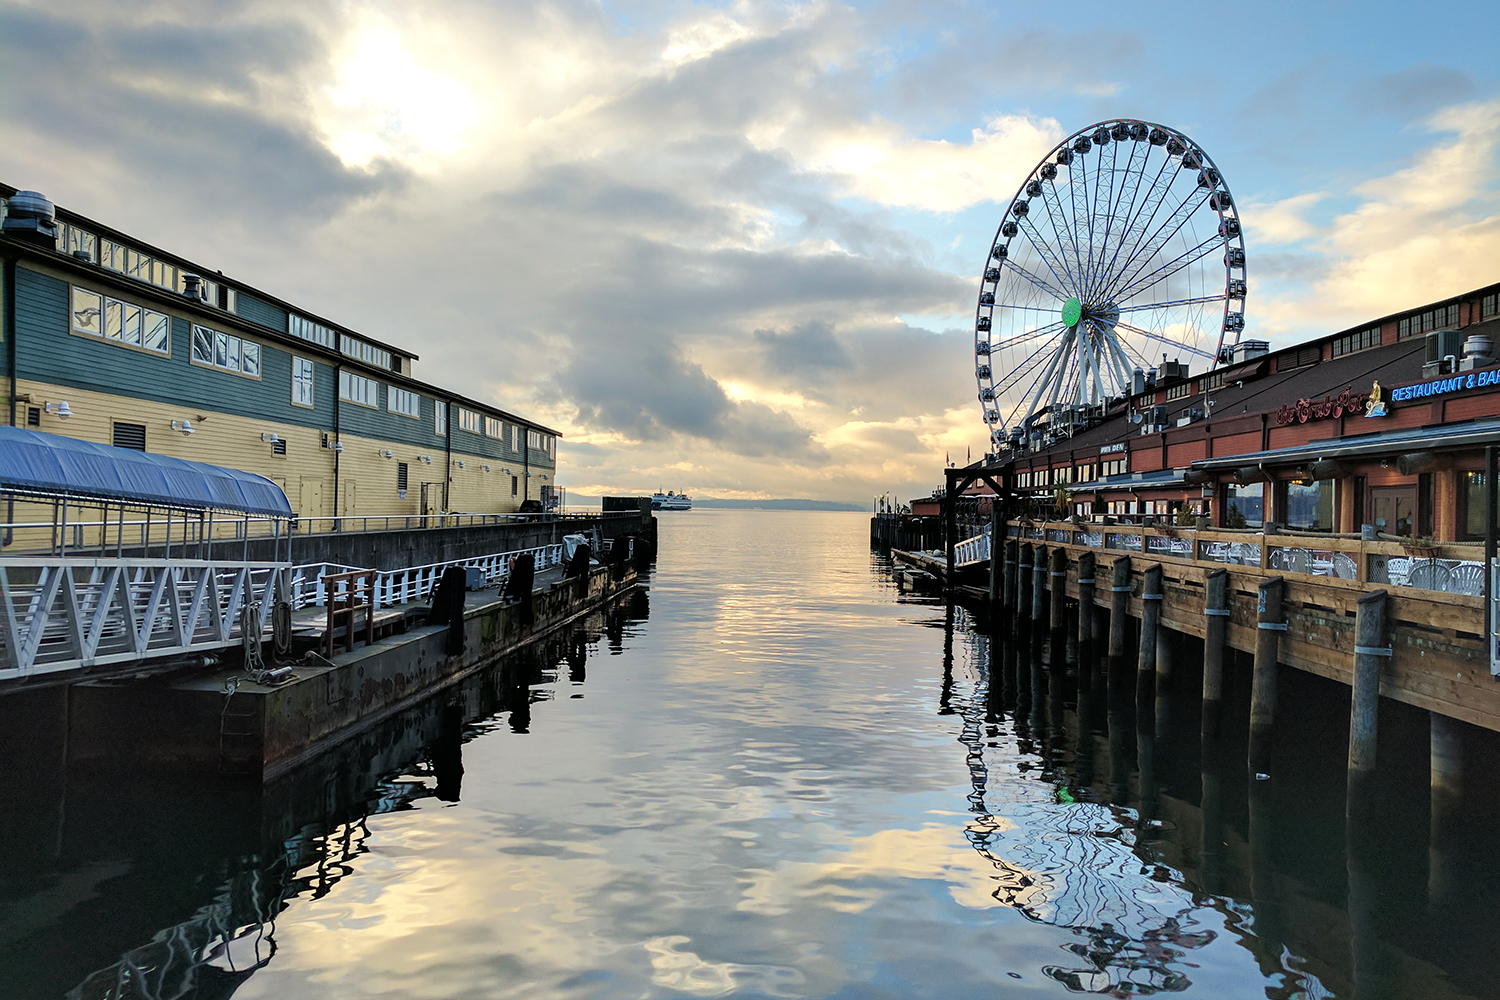 11seattle-pier-ferriswheel-travel